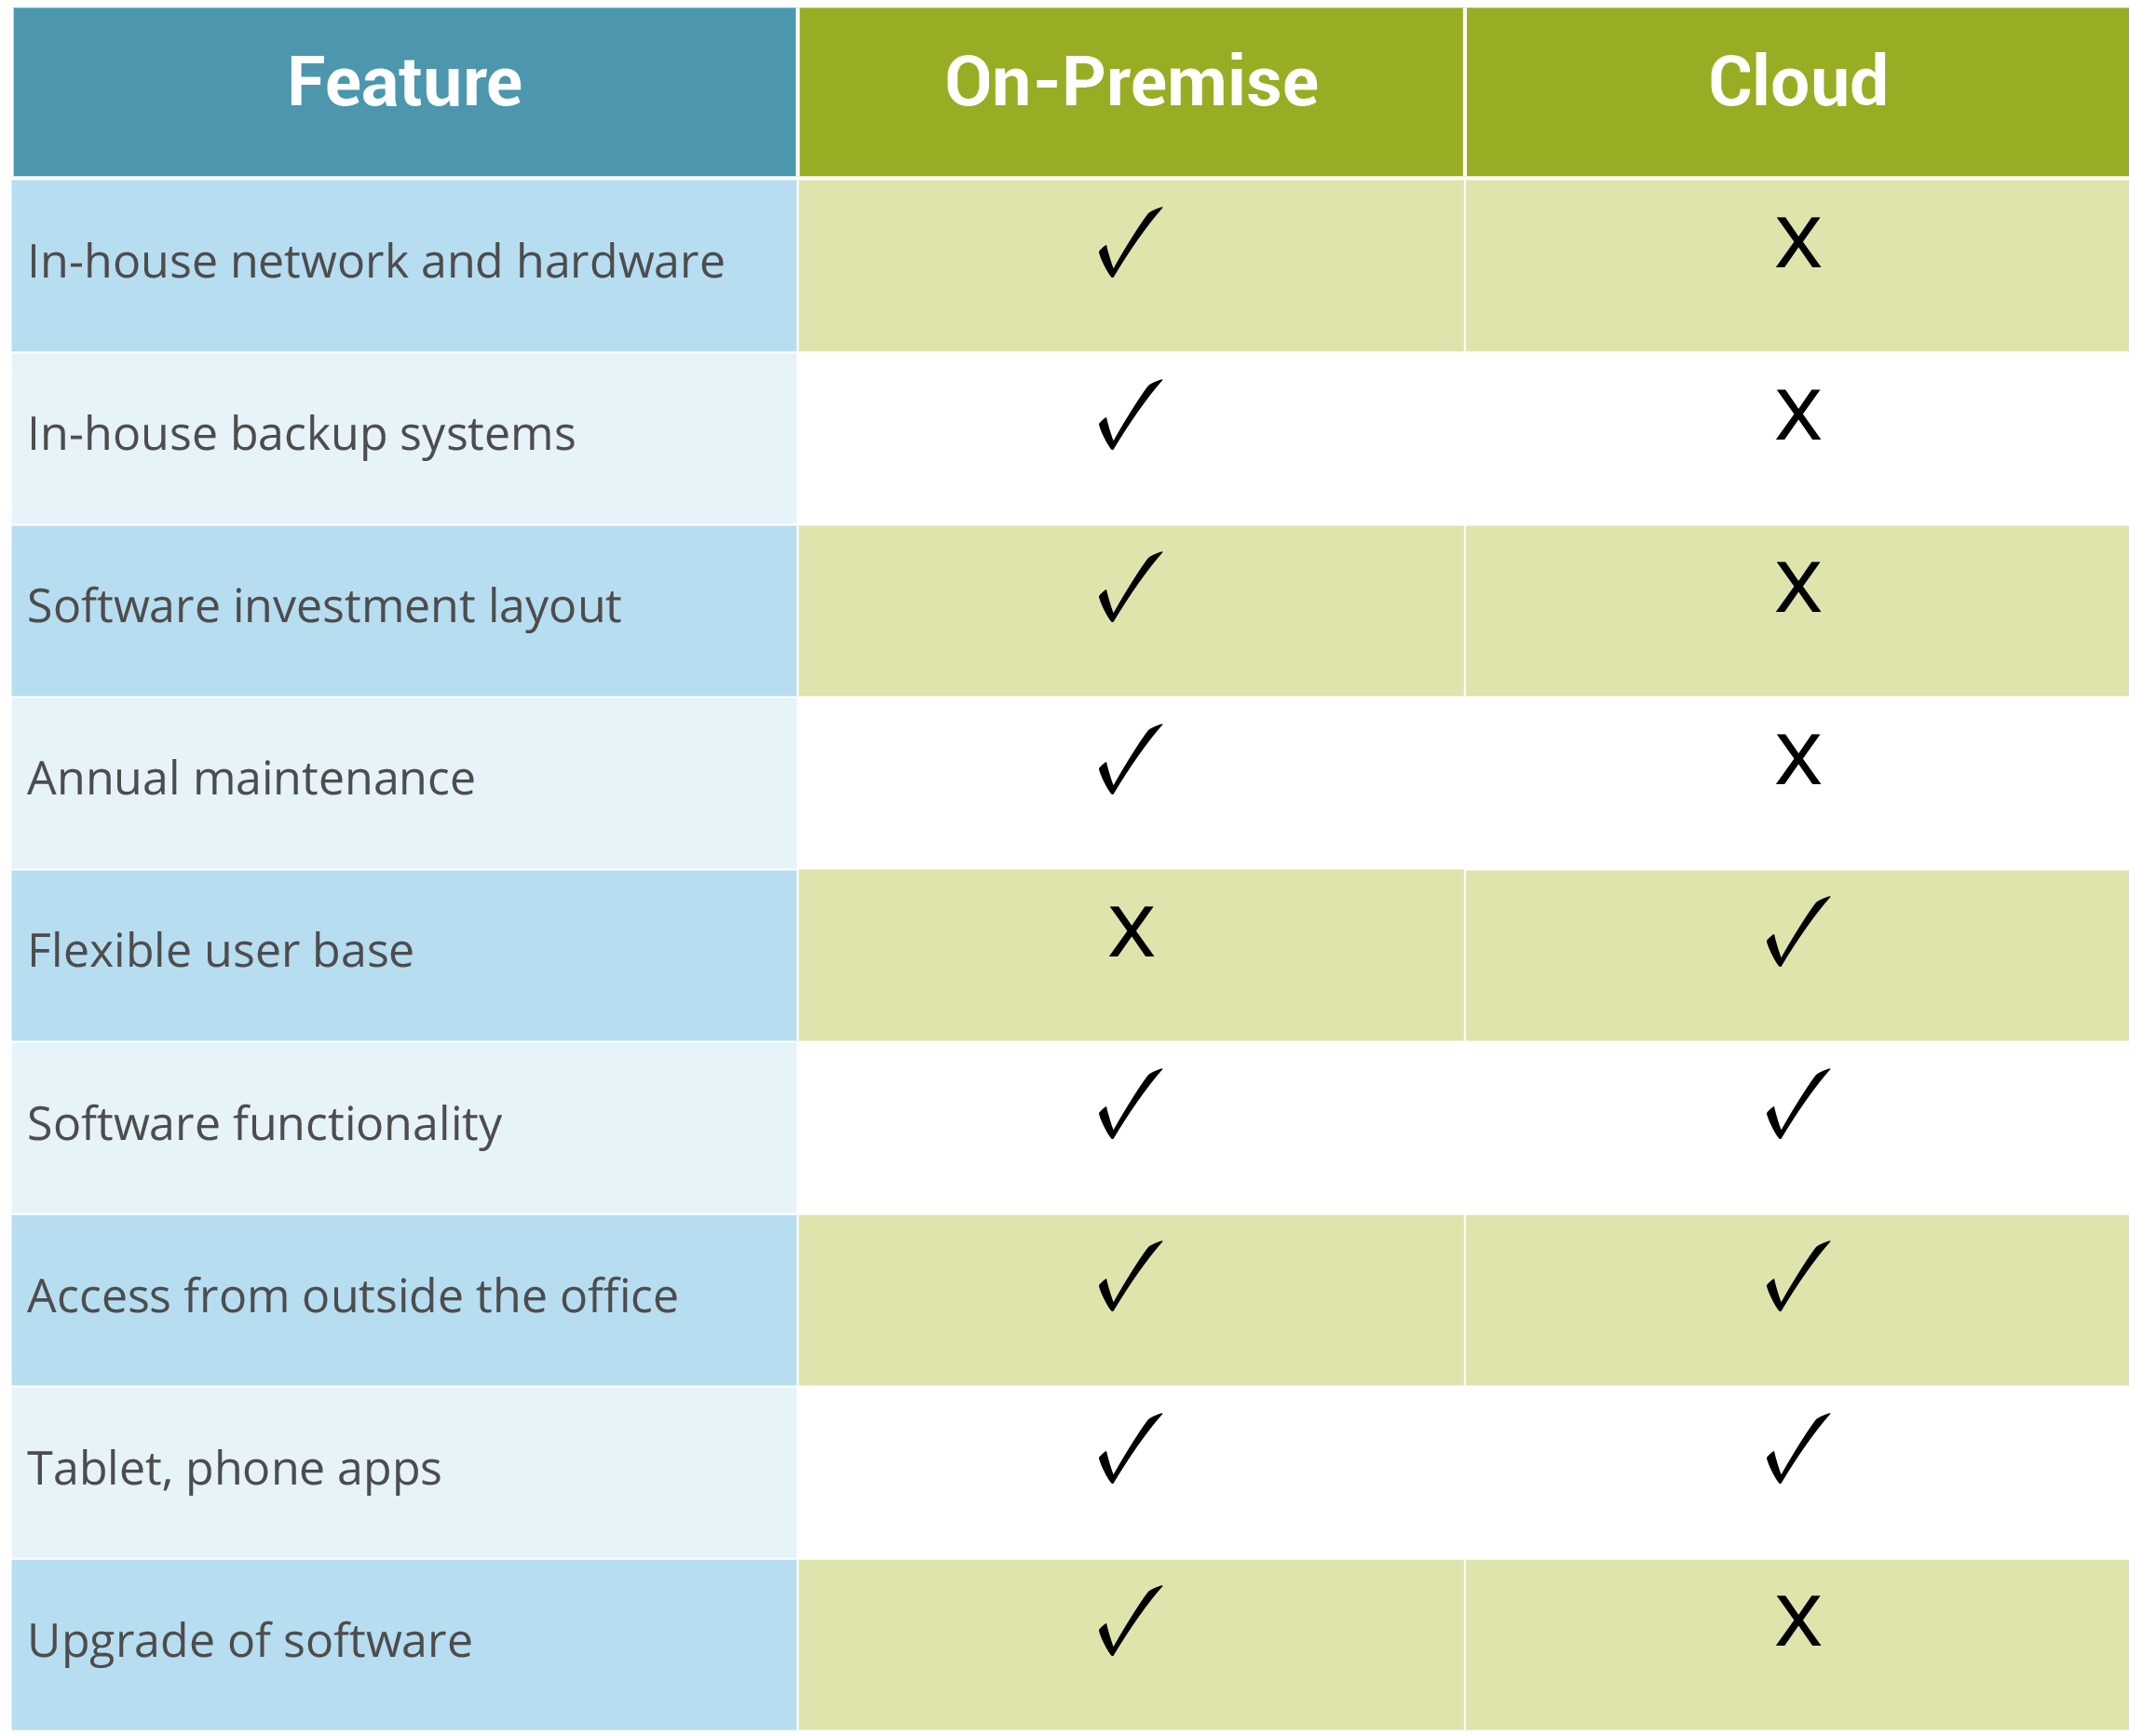 Cloud-vs-On-premise-comparison.png